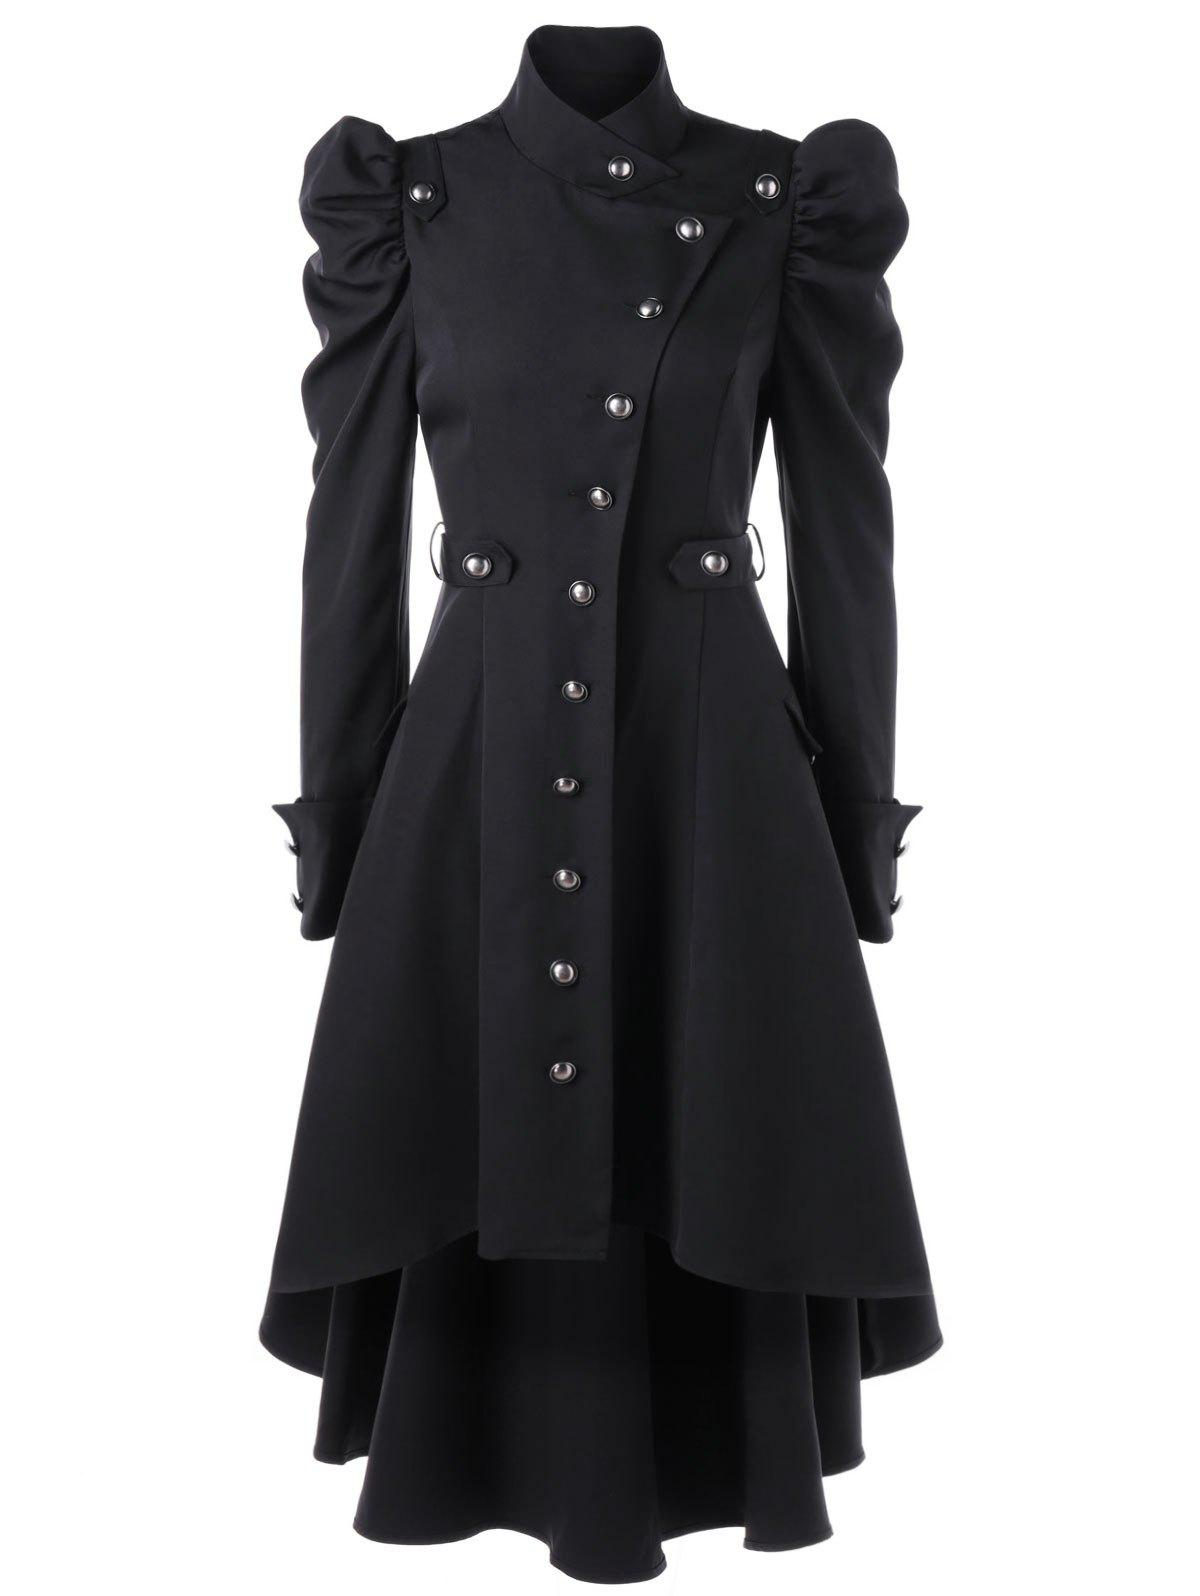 Puff Shoulder Single Breasted Dip Hem Trench CoatWOMEN<br><br>Size: 2XL; Color: BLACK; Clothes Type: Trench; Material: Polyester; Type: High Waist; Shirt Length: Long; Sleeve Length: Full; Collar: Stand-Up Collar; Pattern Type: Solid; Style: Vintage; Season: Fall,Spring; Weight: 0.7000kg; Package Contents: 1 x Trench Coat;